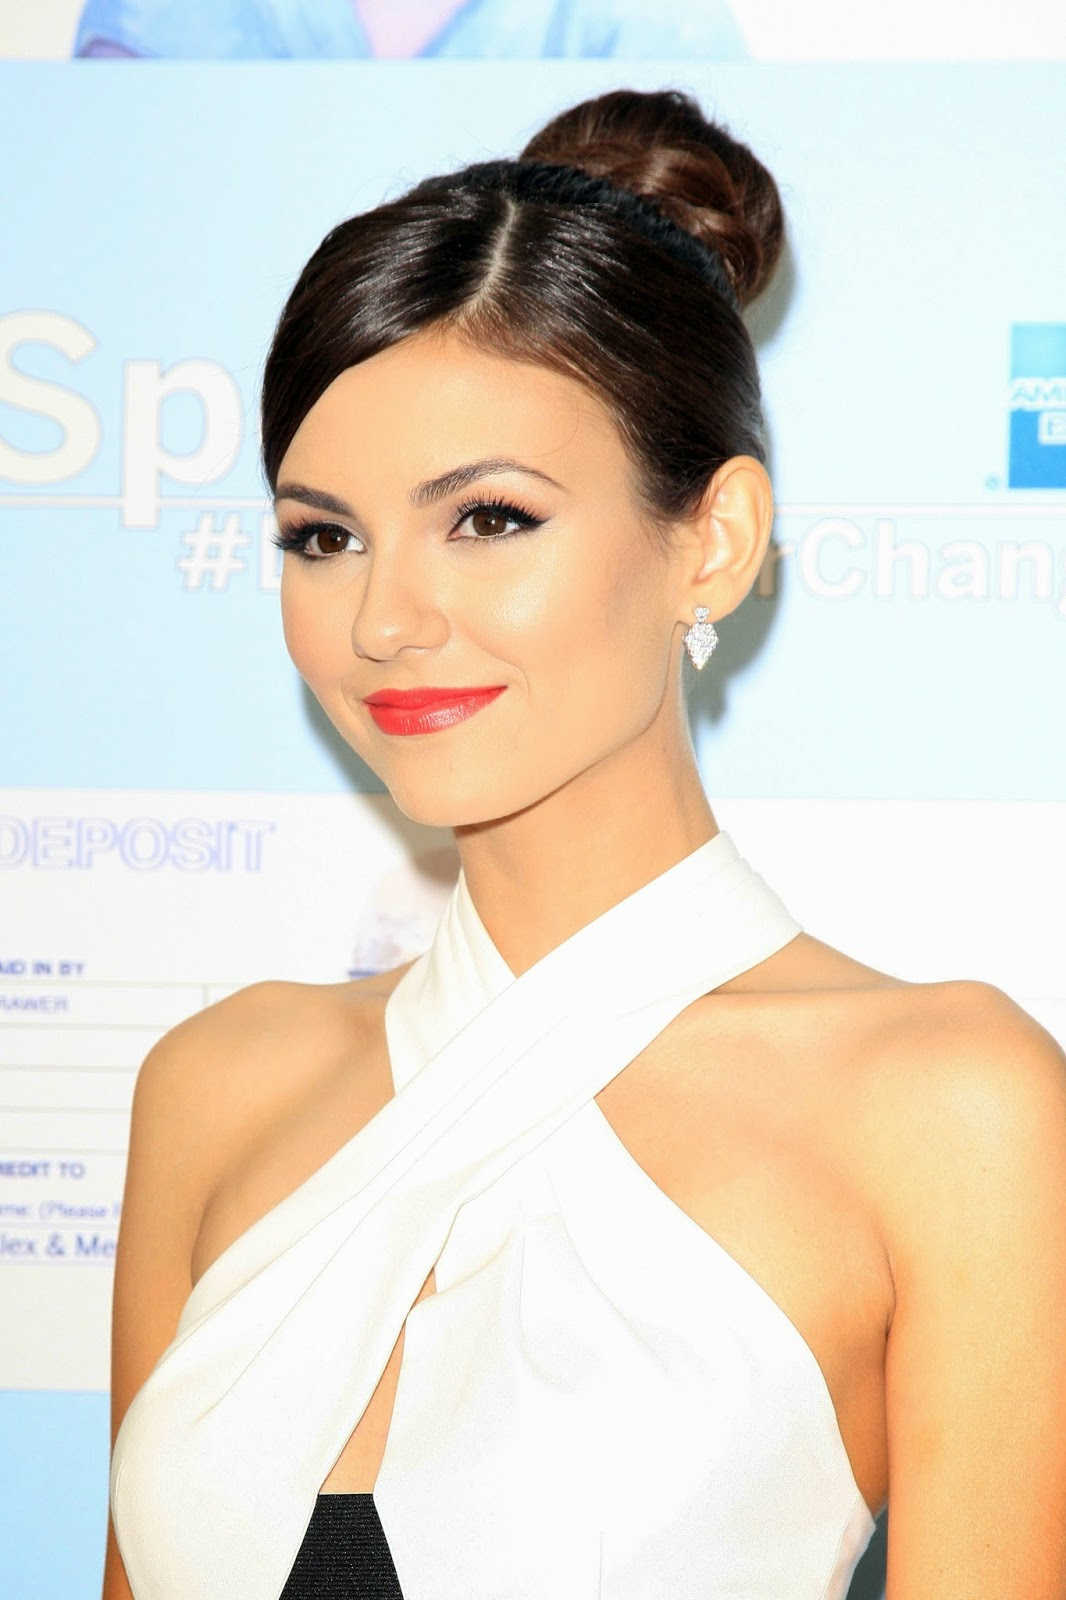 Victoria Justice 'Spent: Looking For Change' premiere in LA 04/06/14